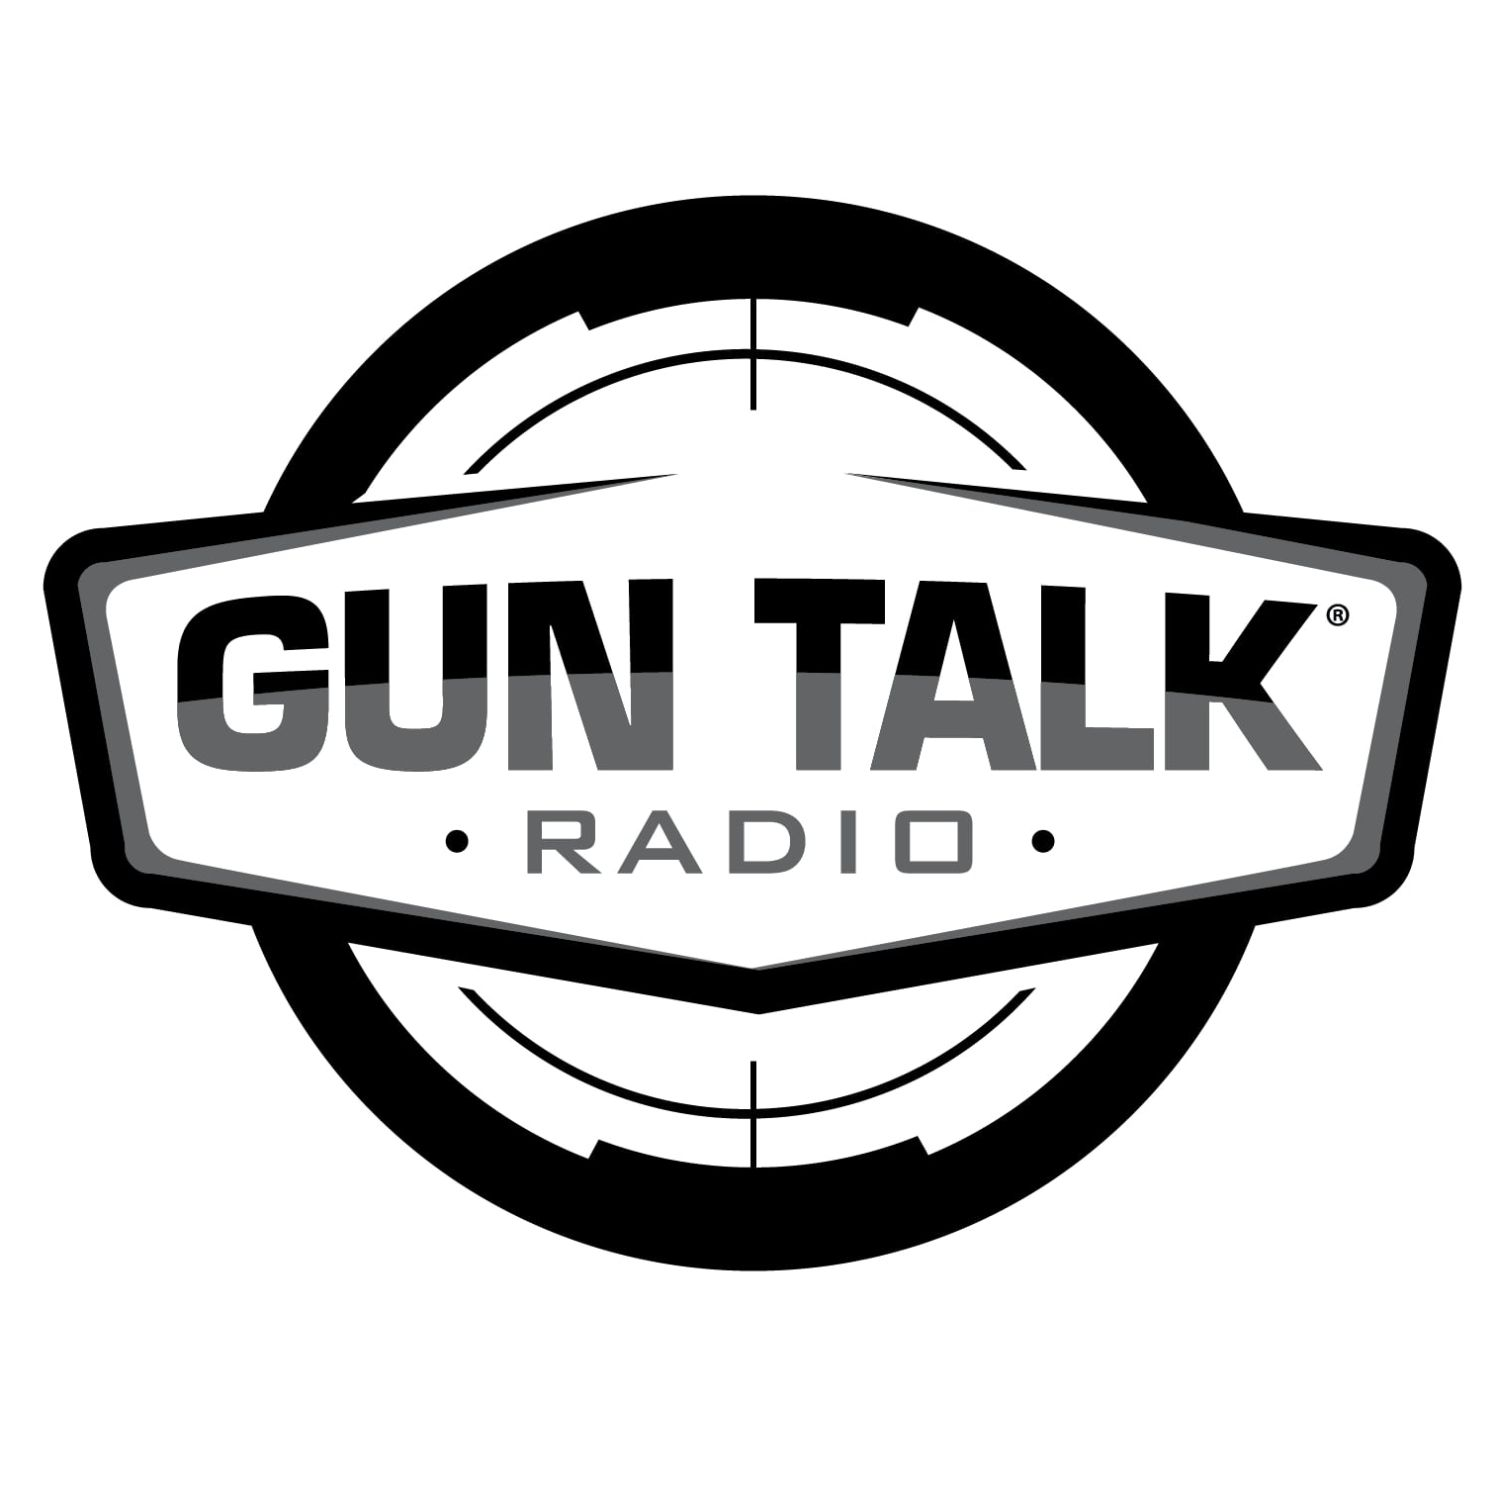 Artwork for Guntalk 2008-10-26 Part C